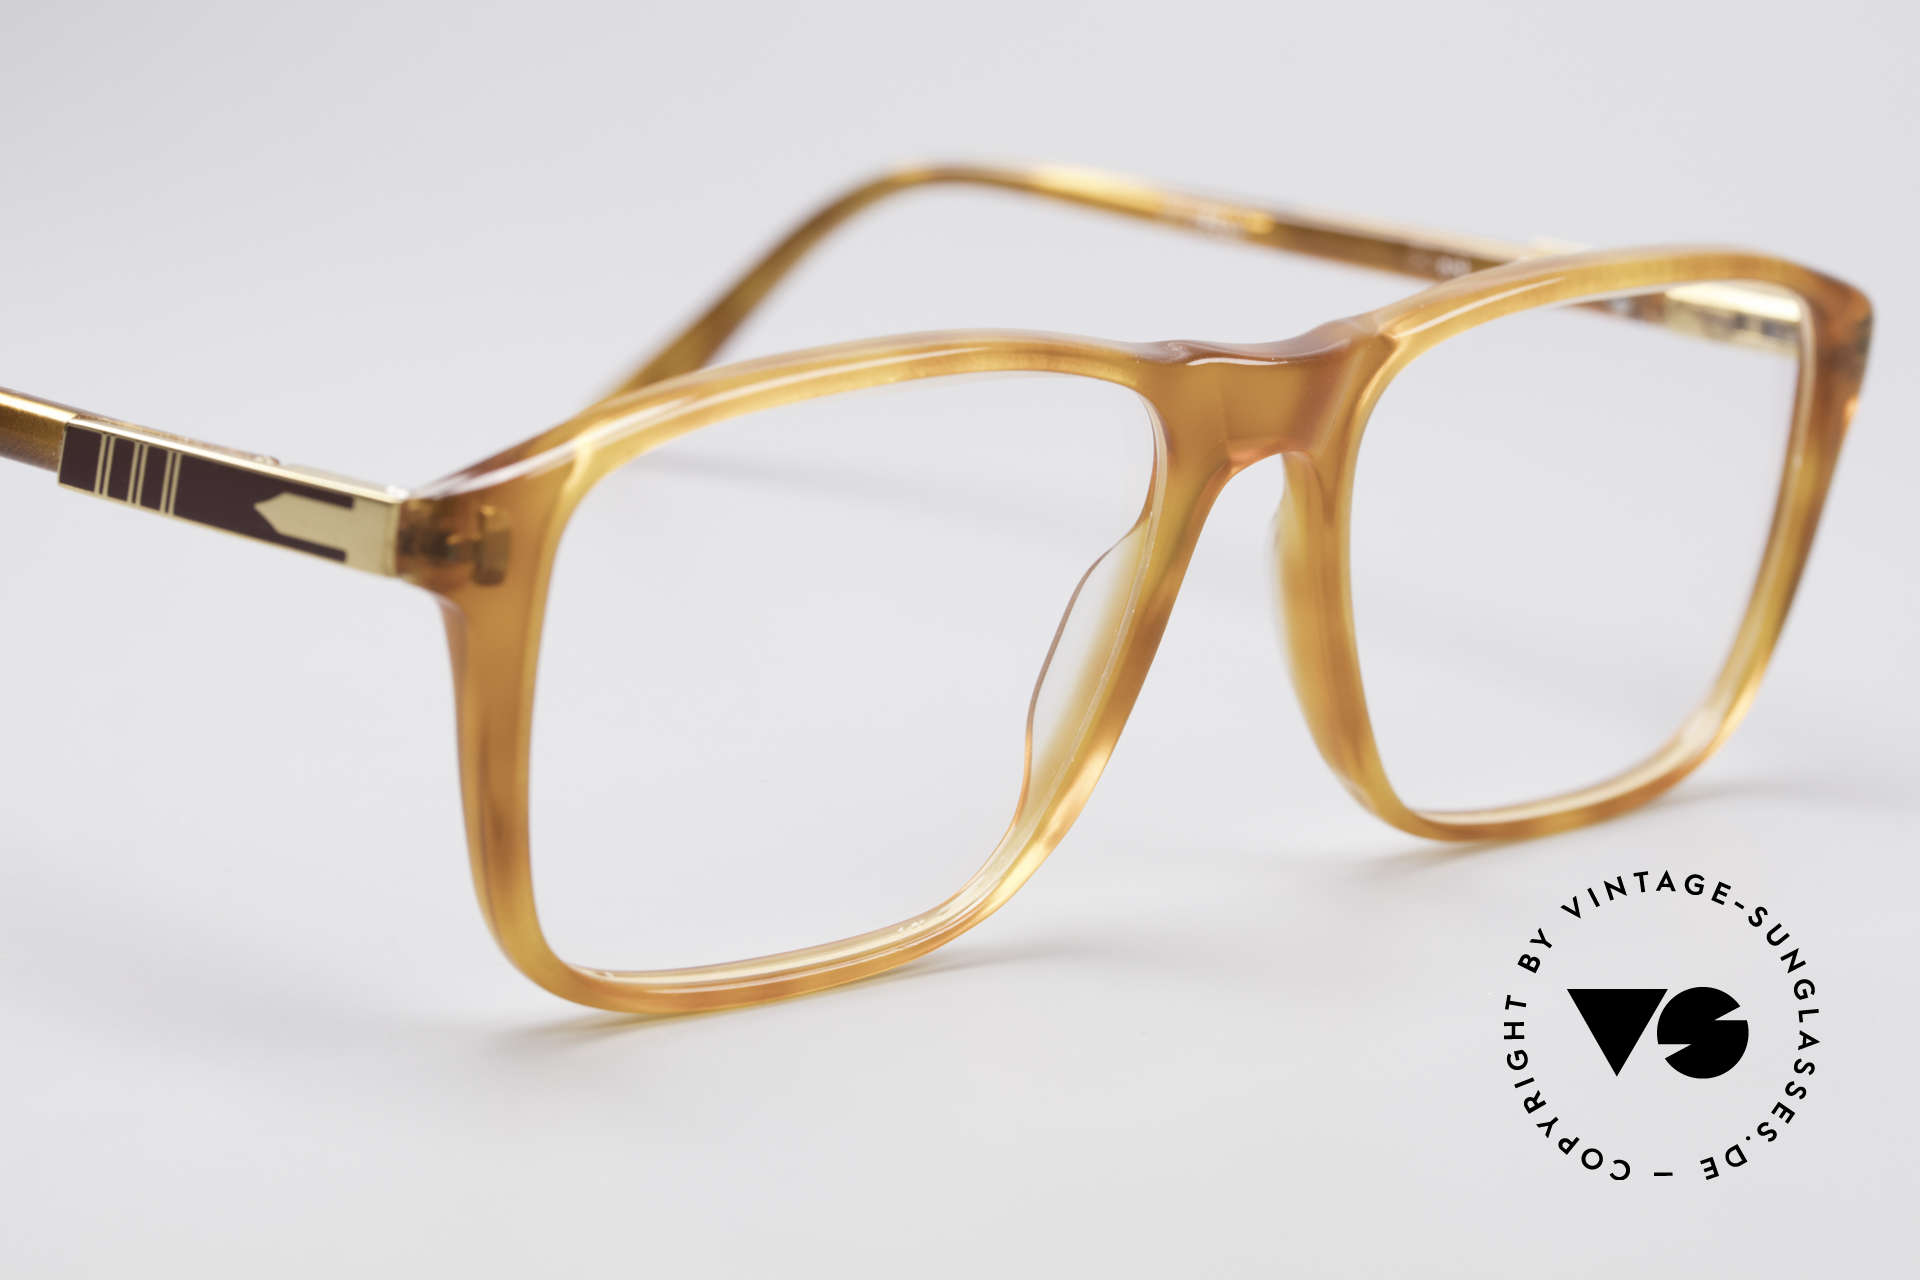 Persol Manager 13 Ratti Gold Plated 80's Frame, 122mm width = rather made for small heads / faces, Made for Men